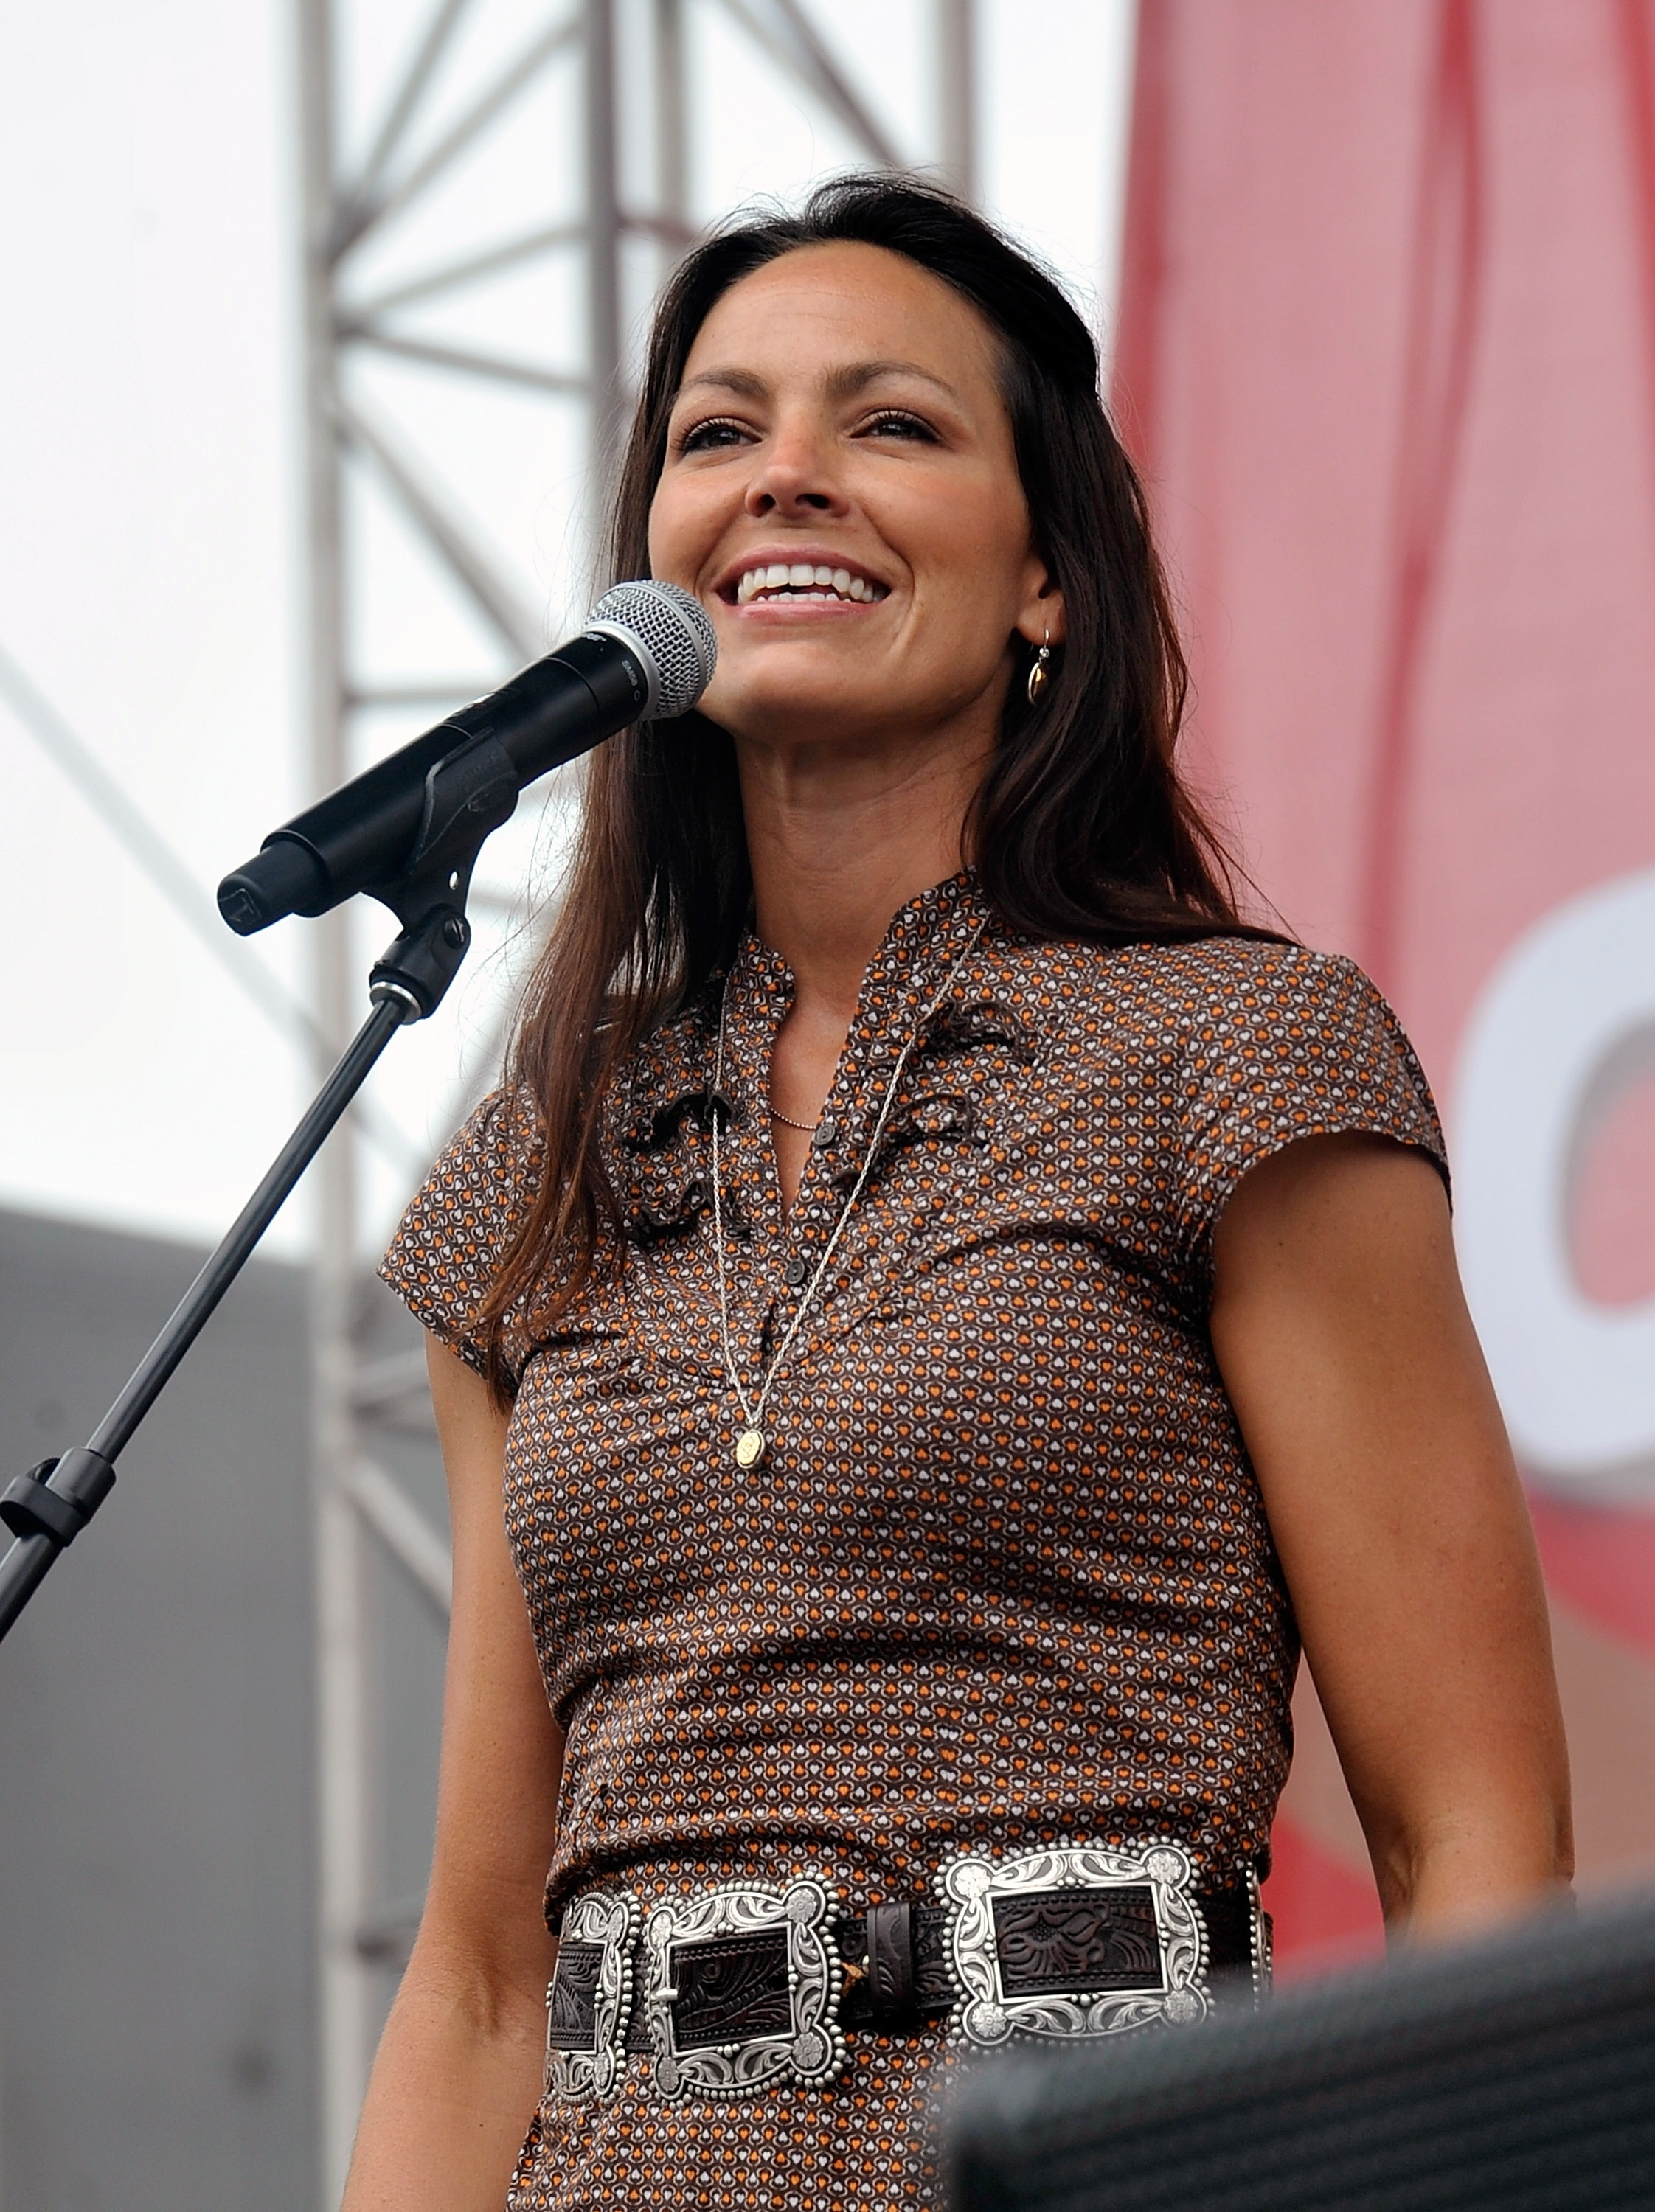 Joey Feek, of Country Duo Joey + Rory, Dead at 40 – Rolling Stone